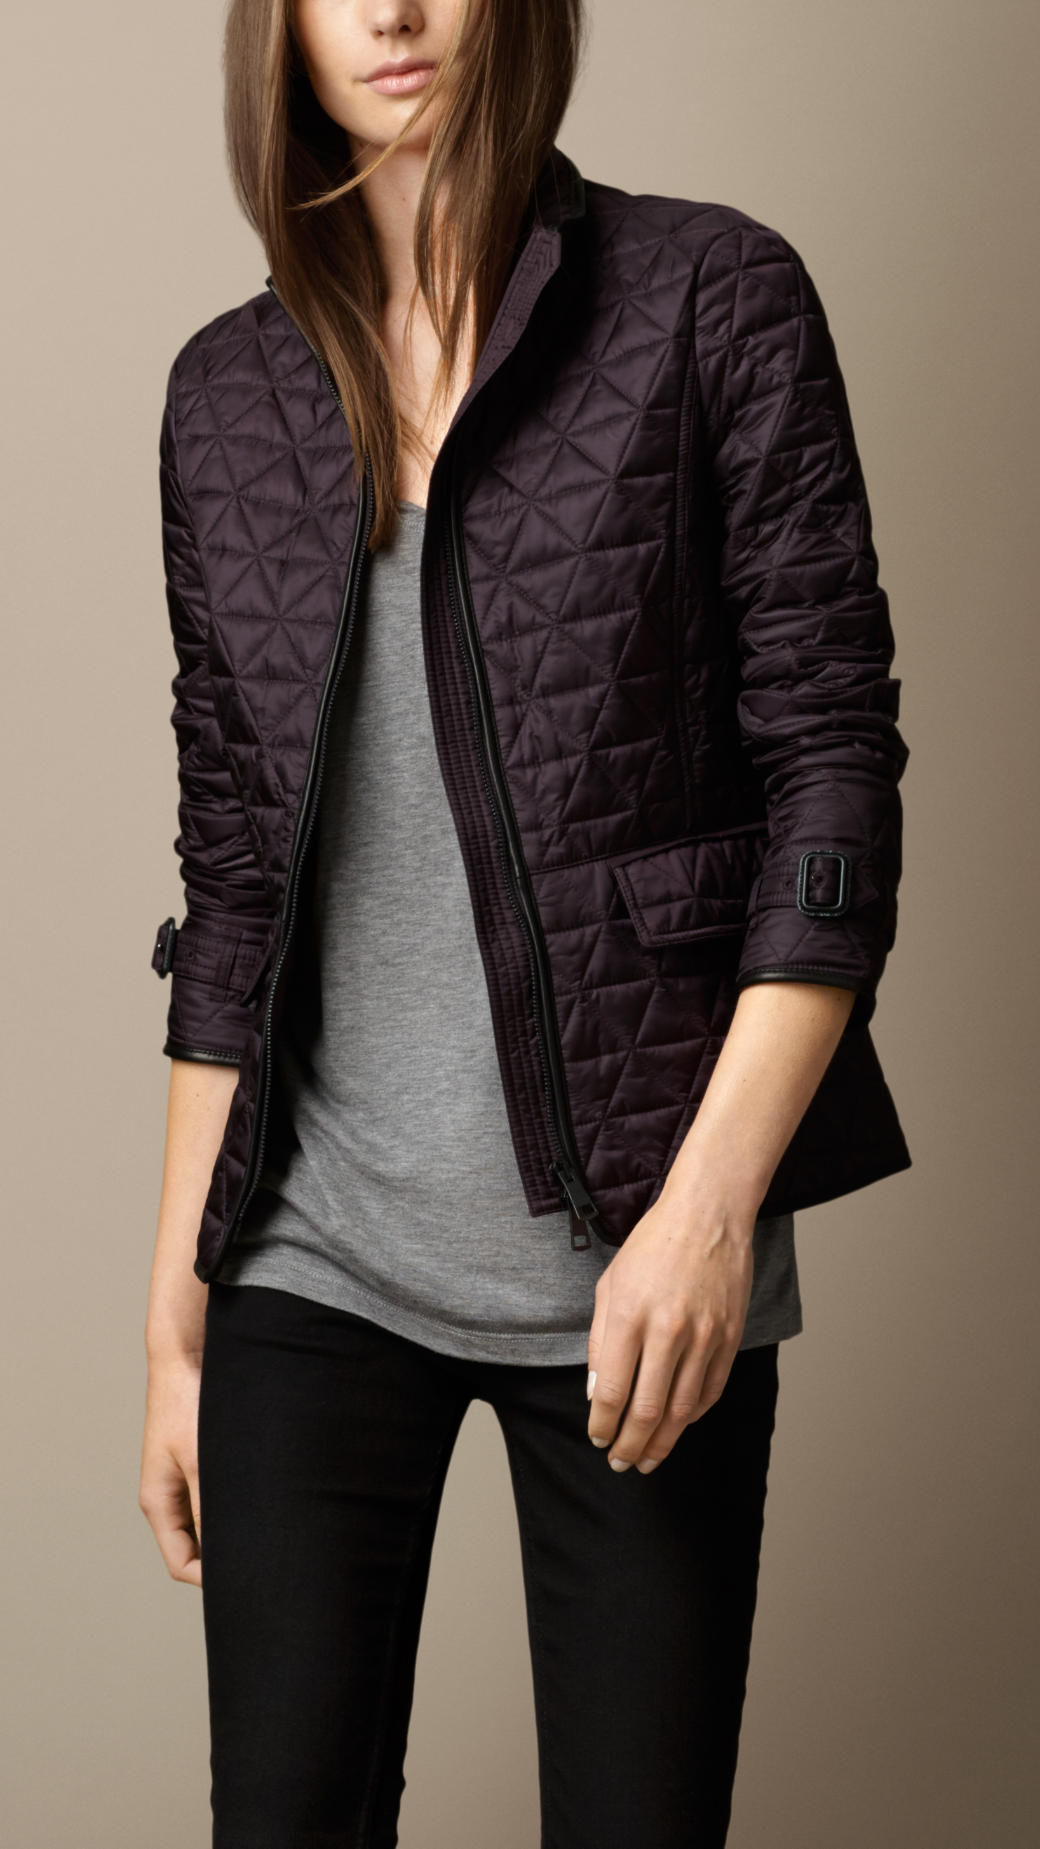 Lyst - Burberry Leather Trim Quilted Jacket in Purple : purple quilted jacket - Adamdwight.com